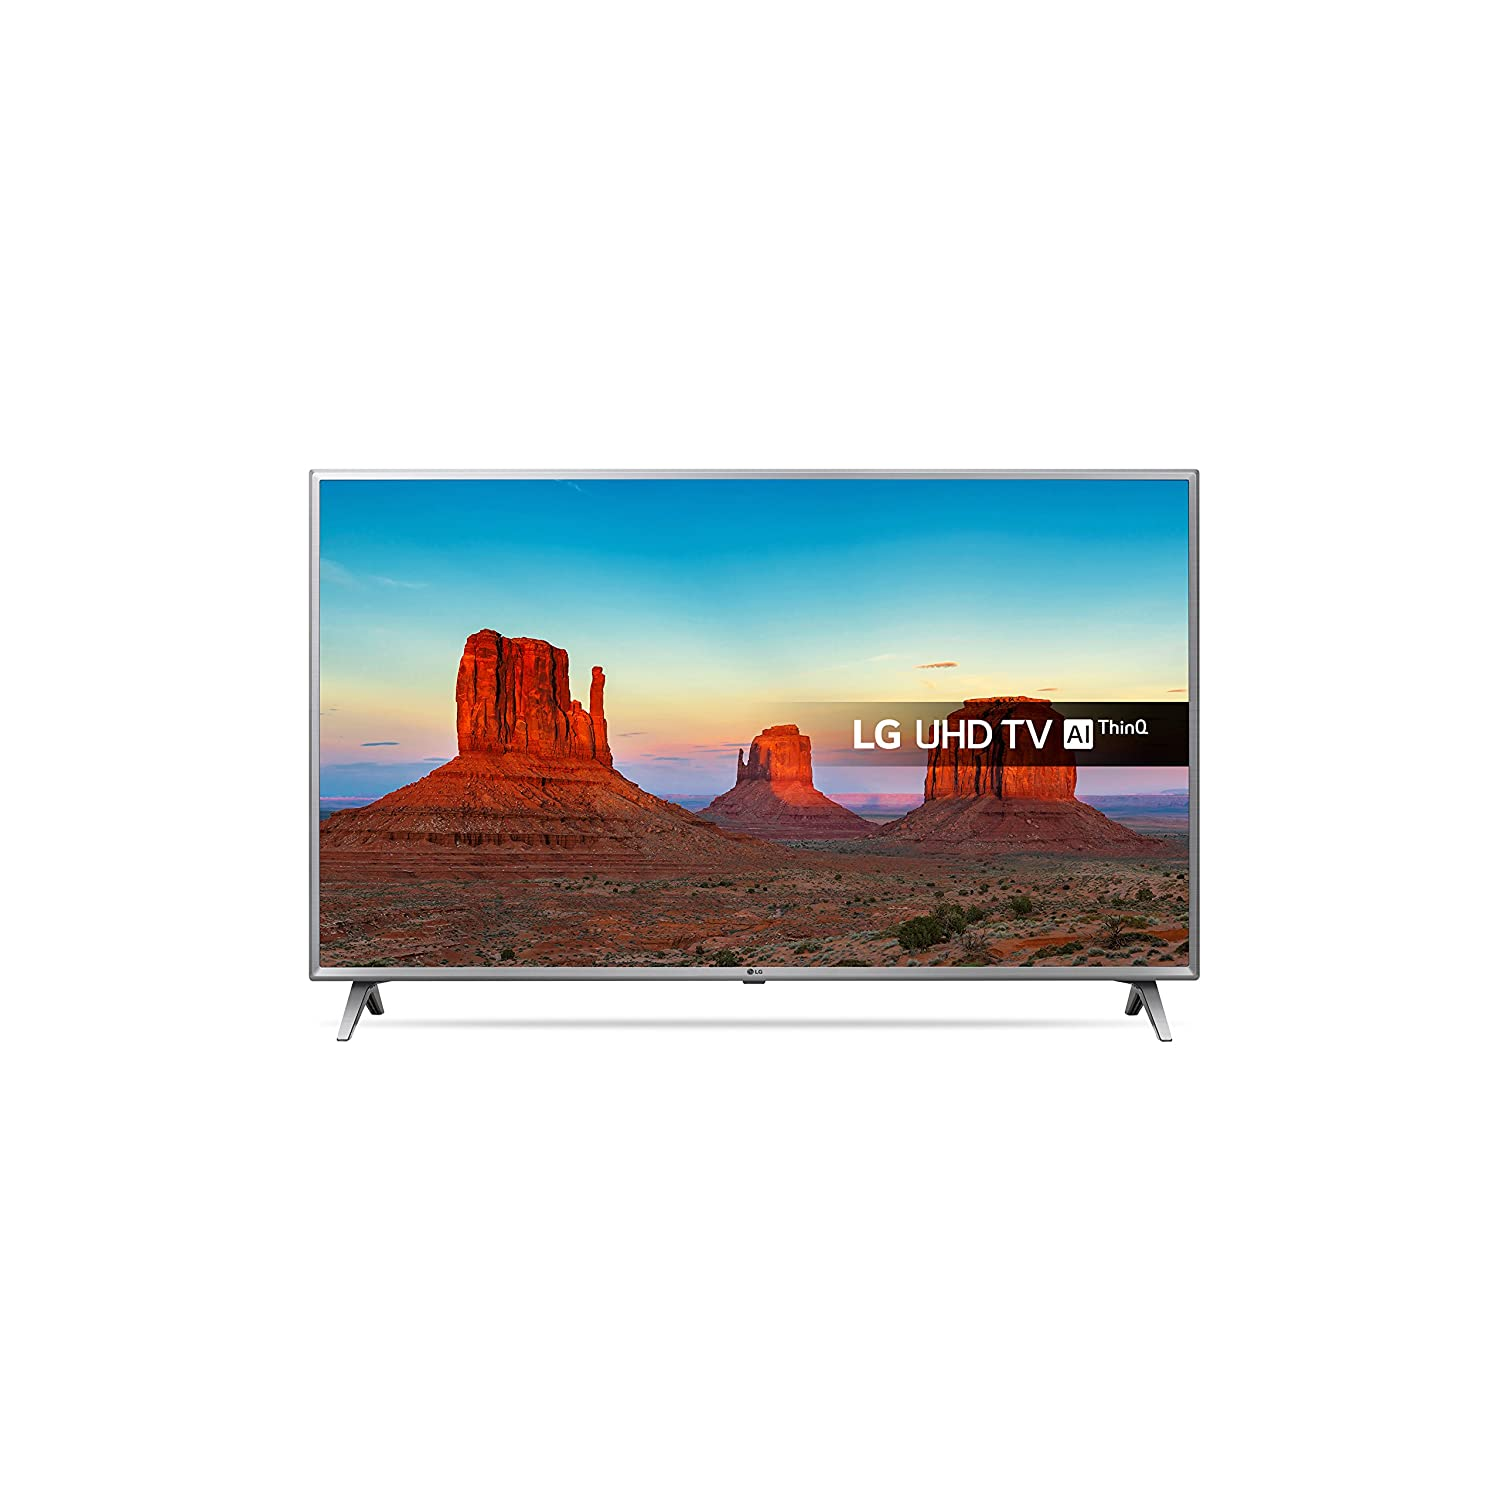 152e4c41df208 LG 75UK6500PLA 75-Inch UHD 4K HDR Smart LED TV with Freeview Play - Steel  Silver Black (2018 Model)  Energy Class A